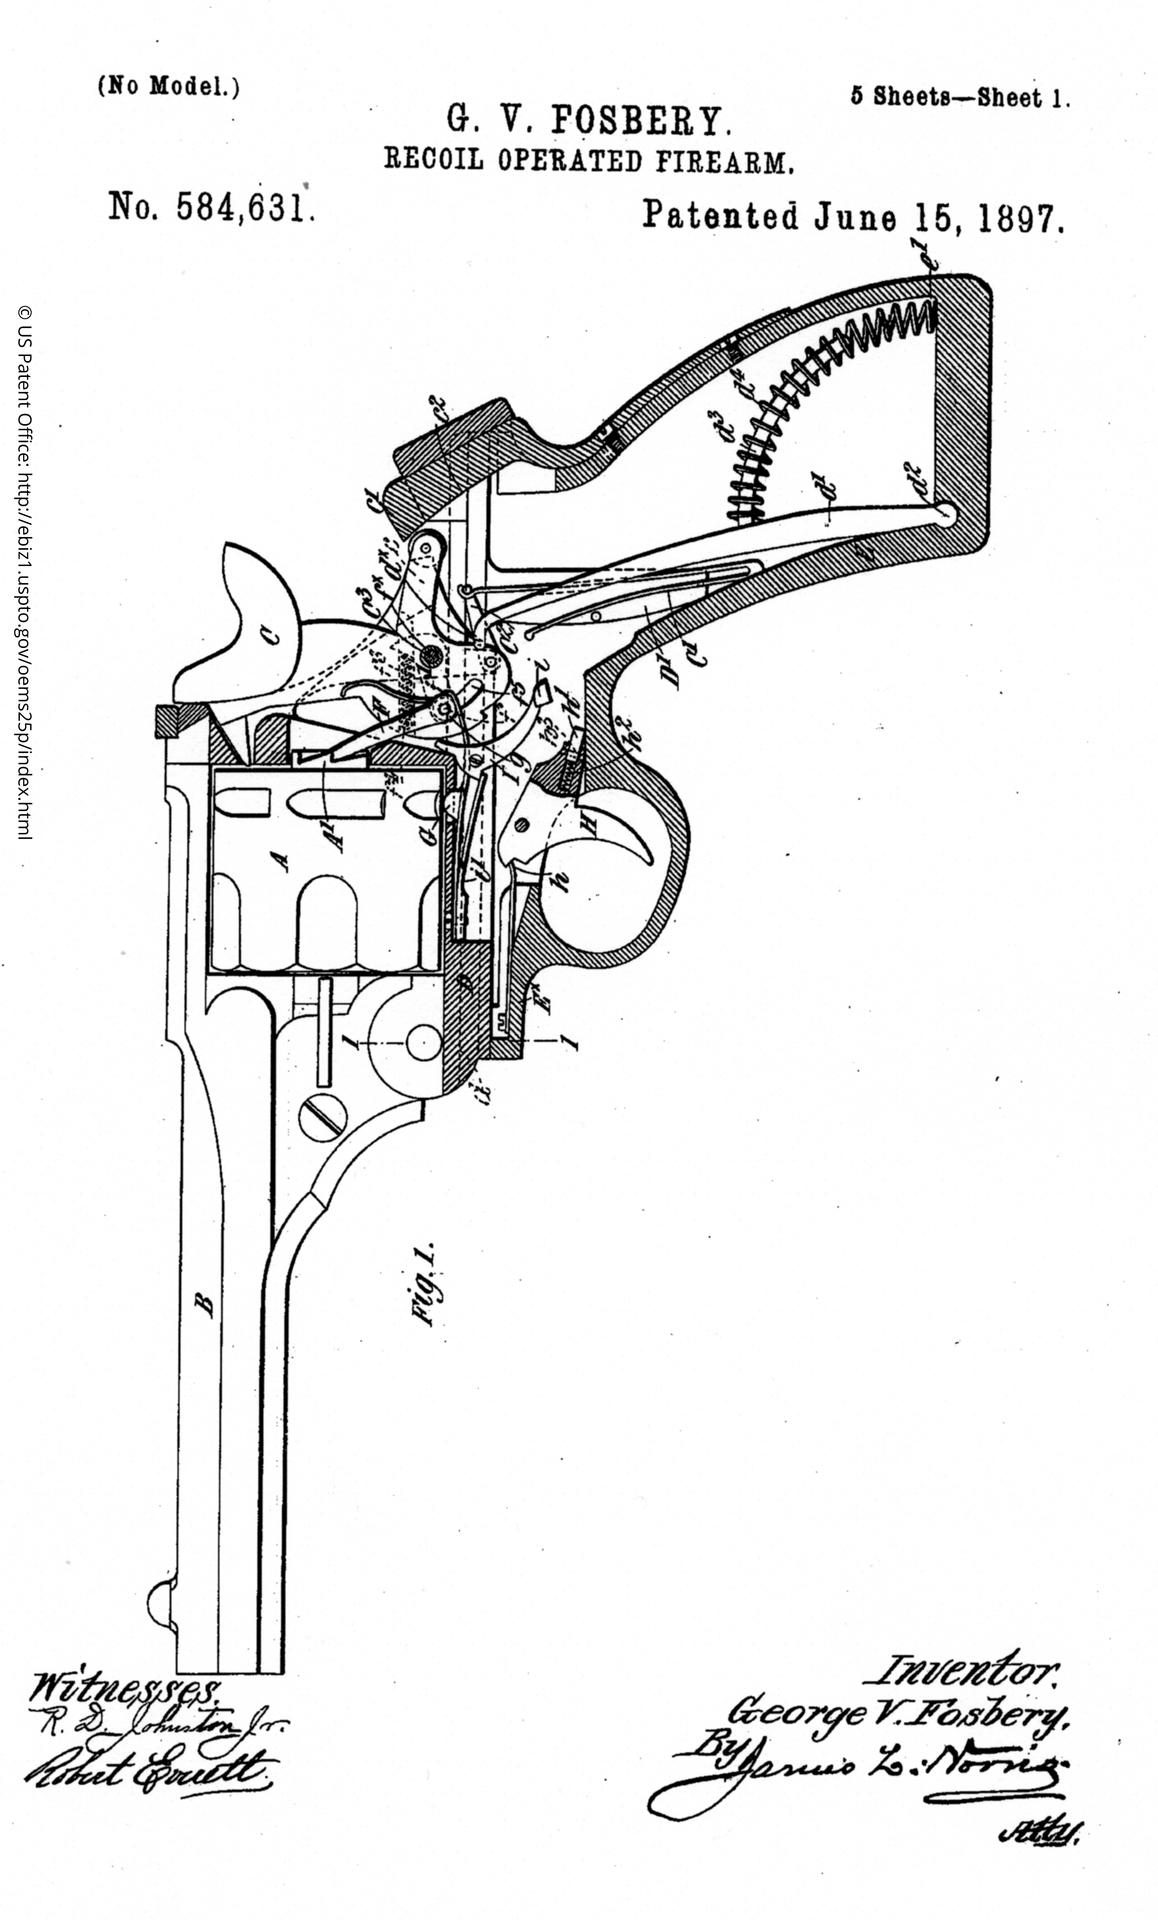 Patent Drawing for the G.V. Fosbery recoil operated firearm, June 15th, 1897. US Patent No. 584631.